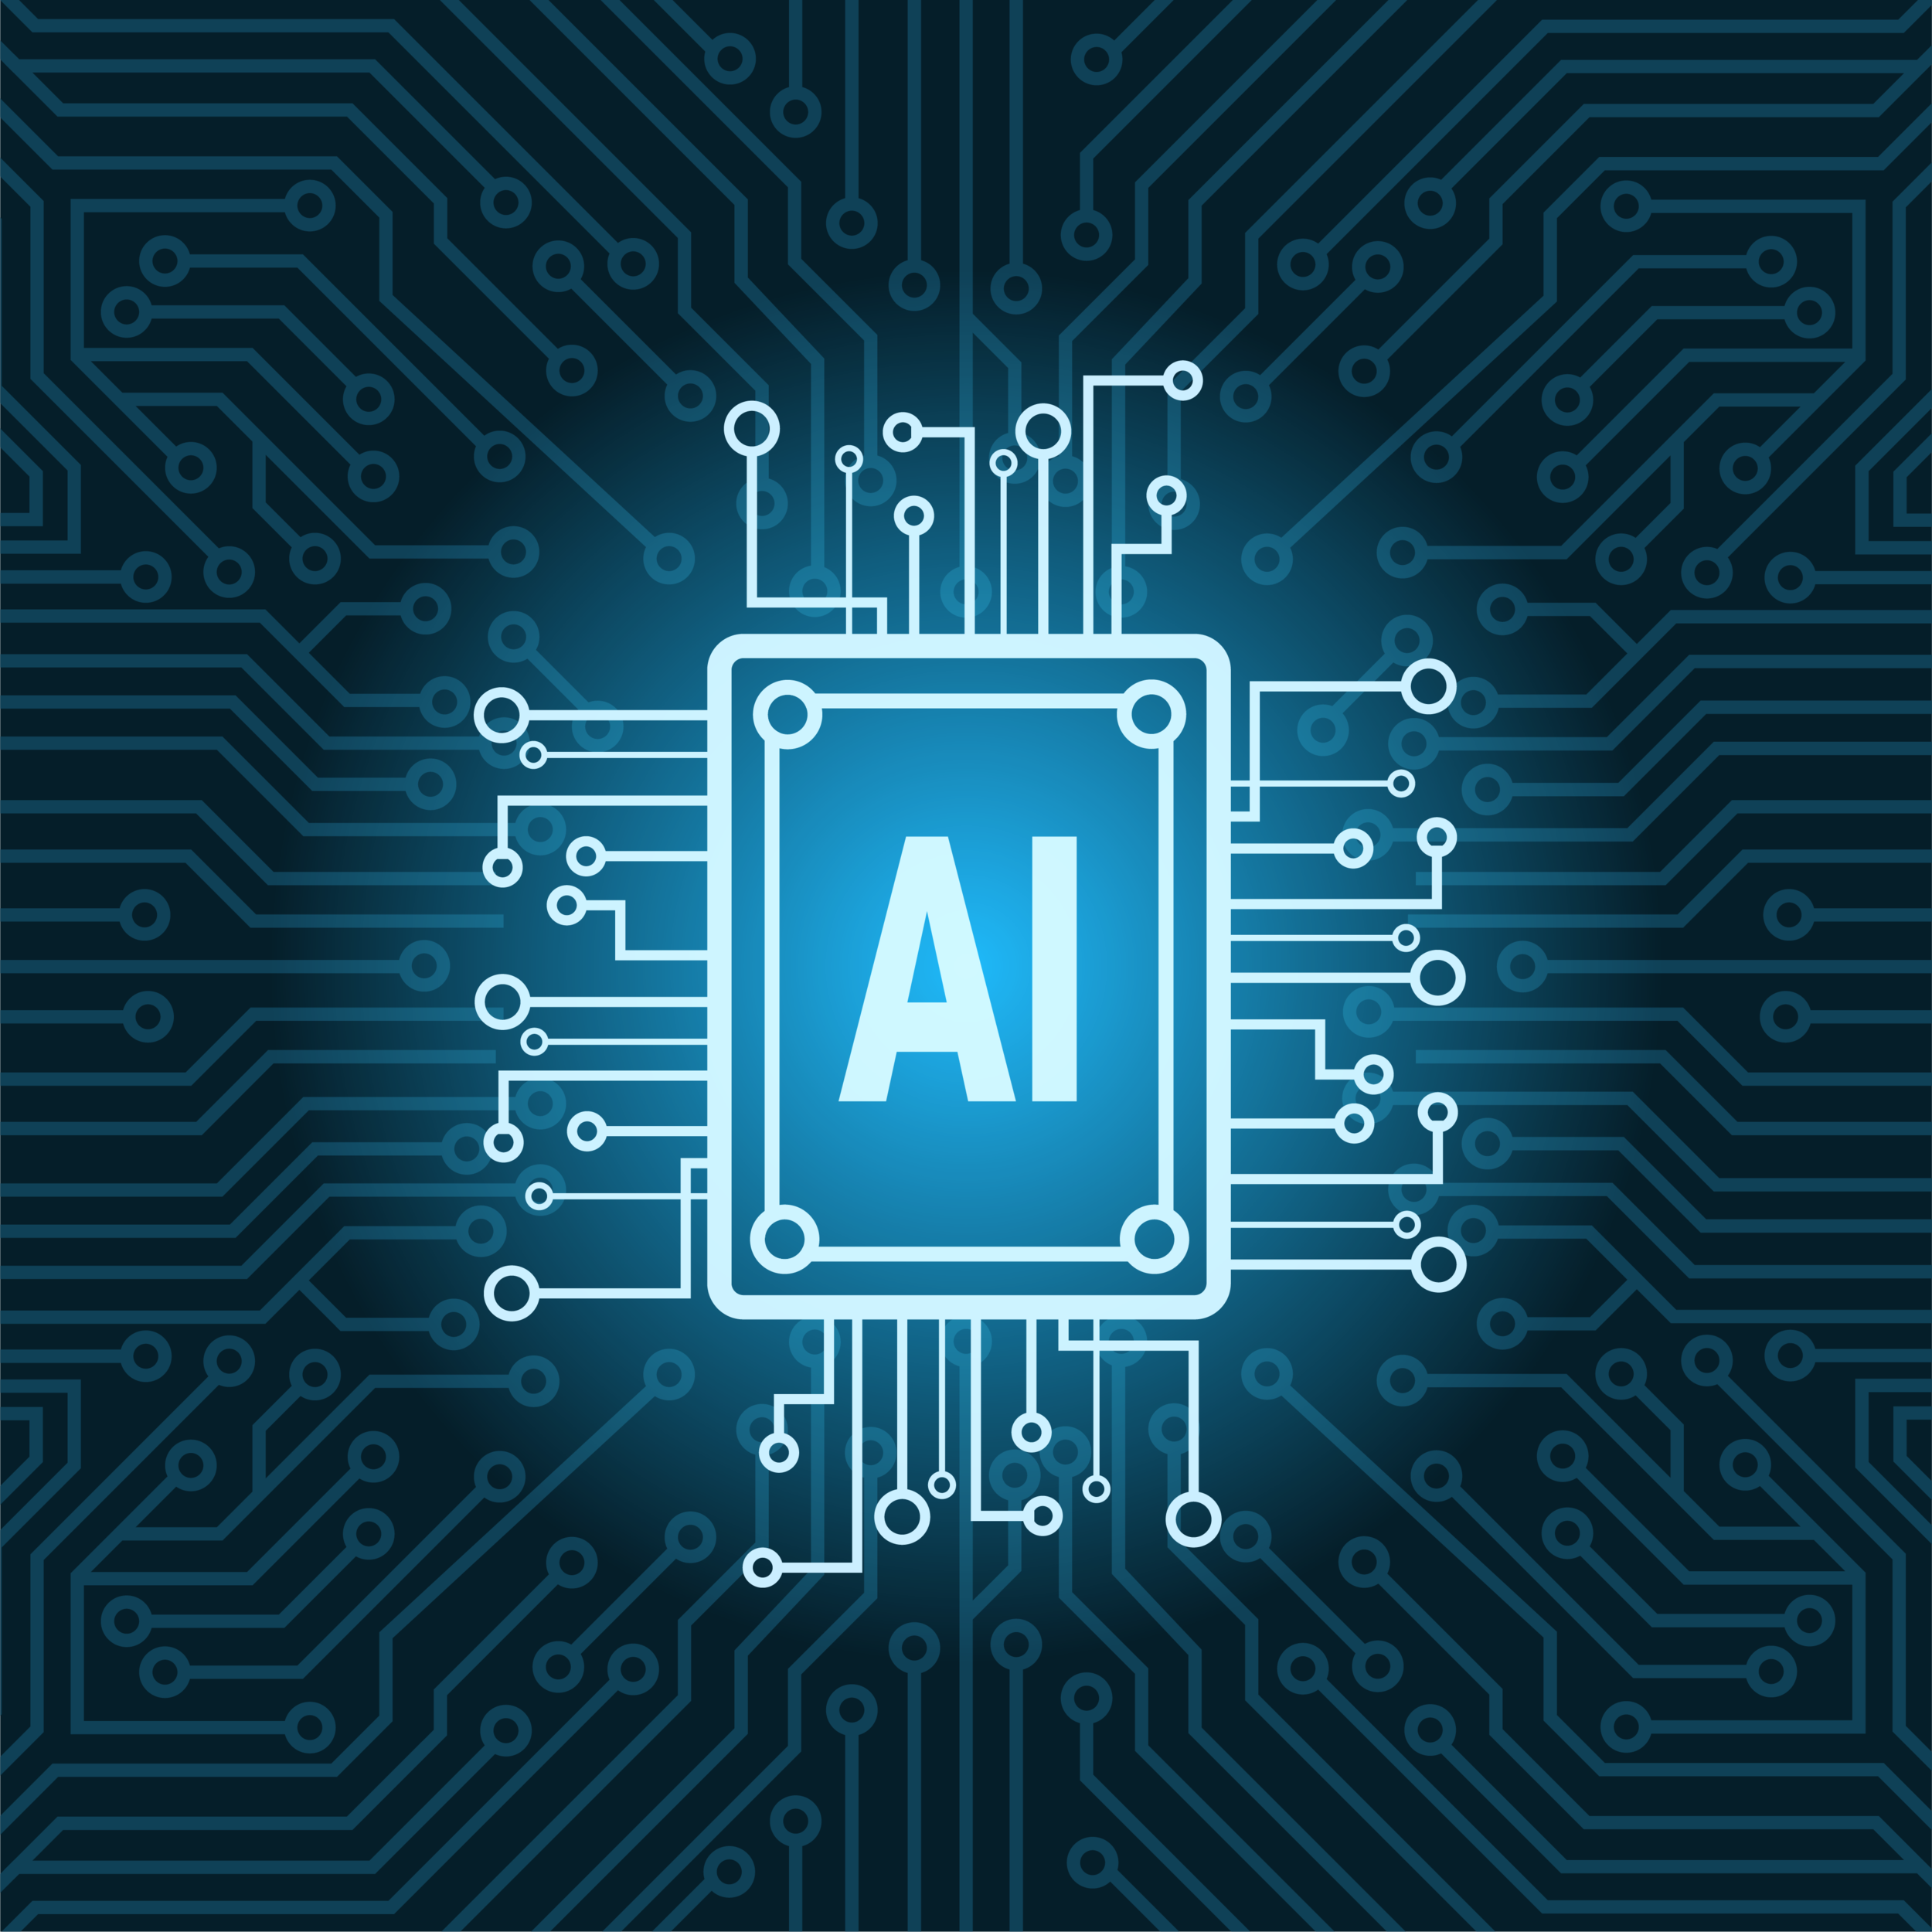 Machine learning is driving AI